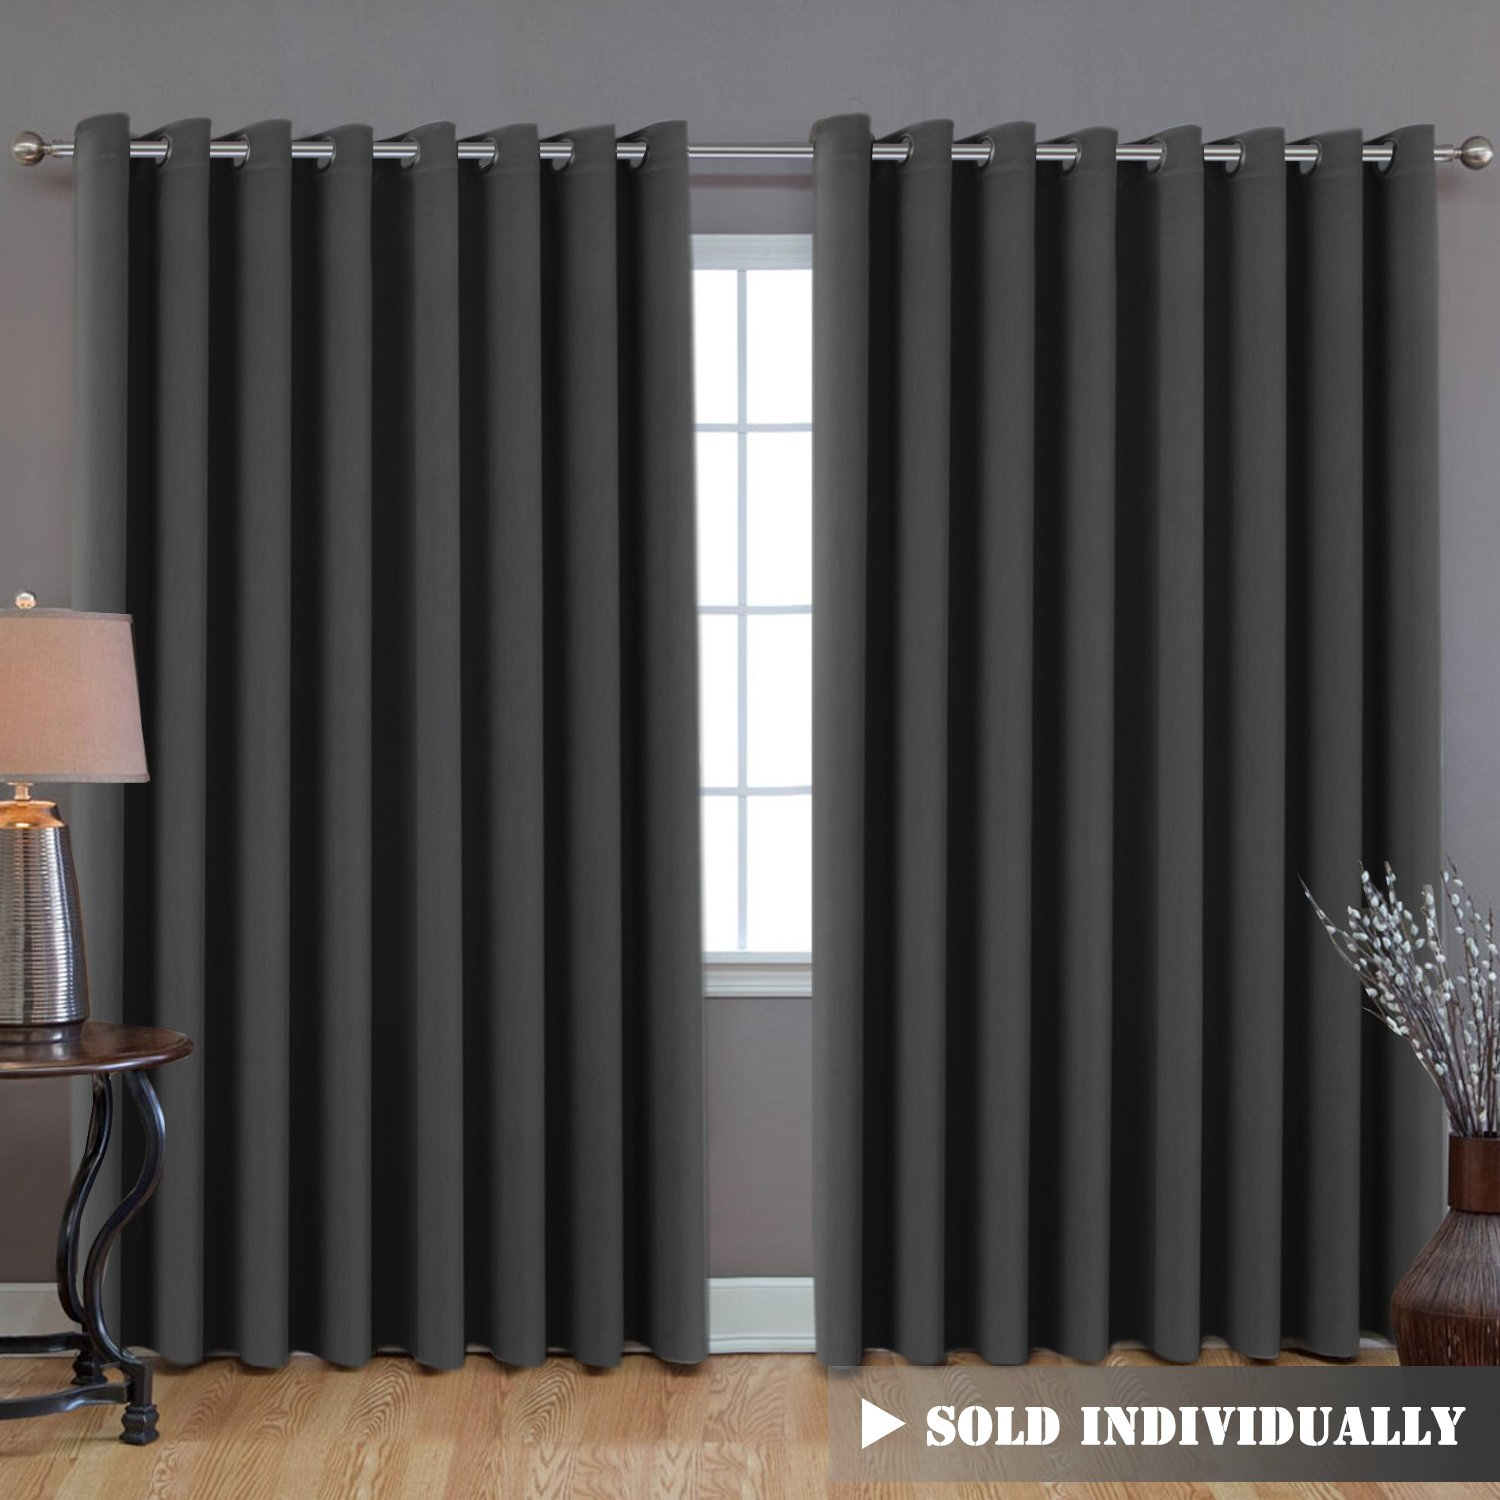 H.VERSAILTEX Extra Long and Wide Blackout Curtains, Thermal Insulated Premium Room Divider (Total Privacy, 9' Tall by 8.5' Wide -Grommet Wider Curtain Large Size 100'' W by 108'' L-Charcoal Gray by H.VERSAILTEX